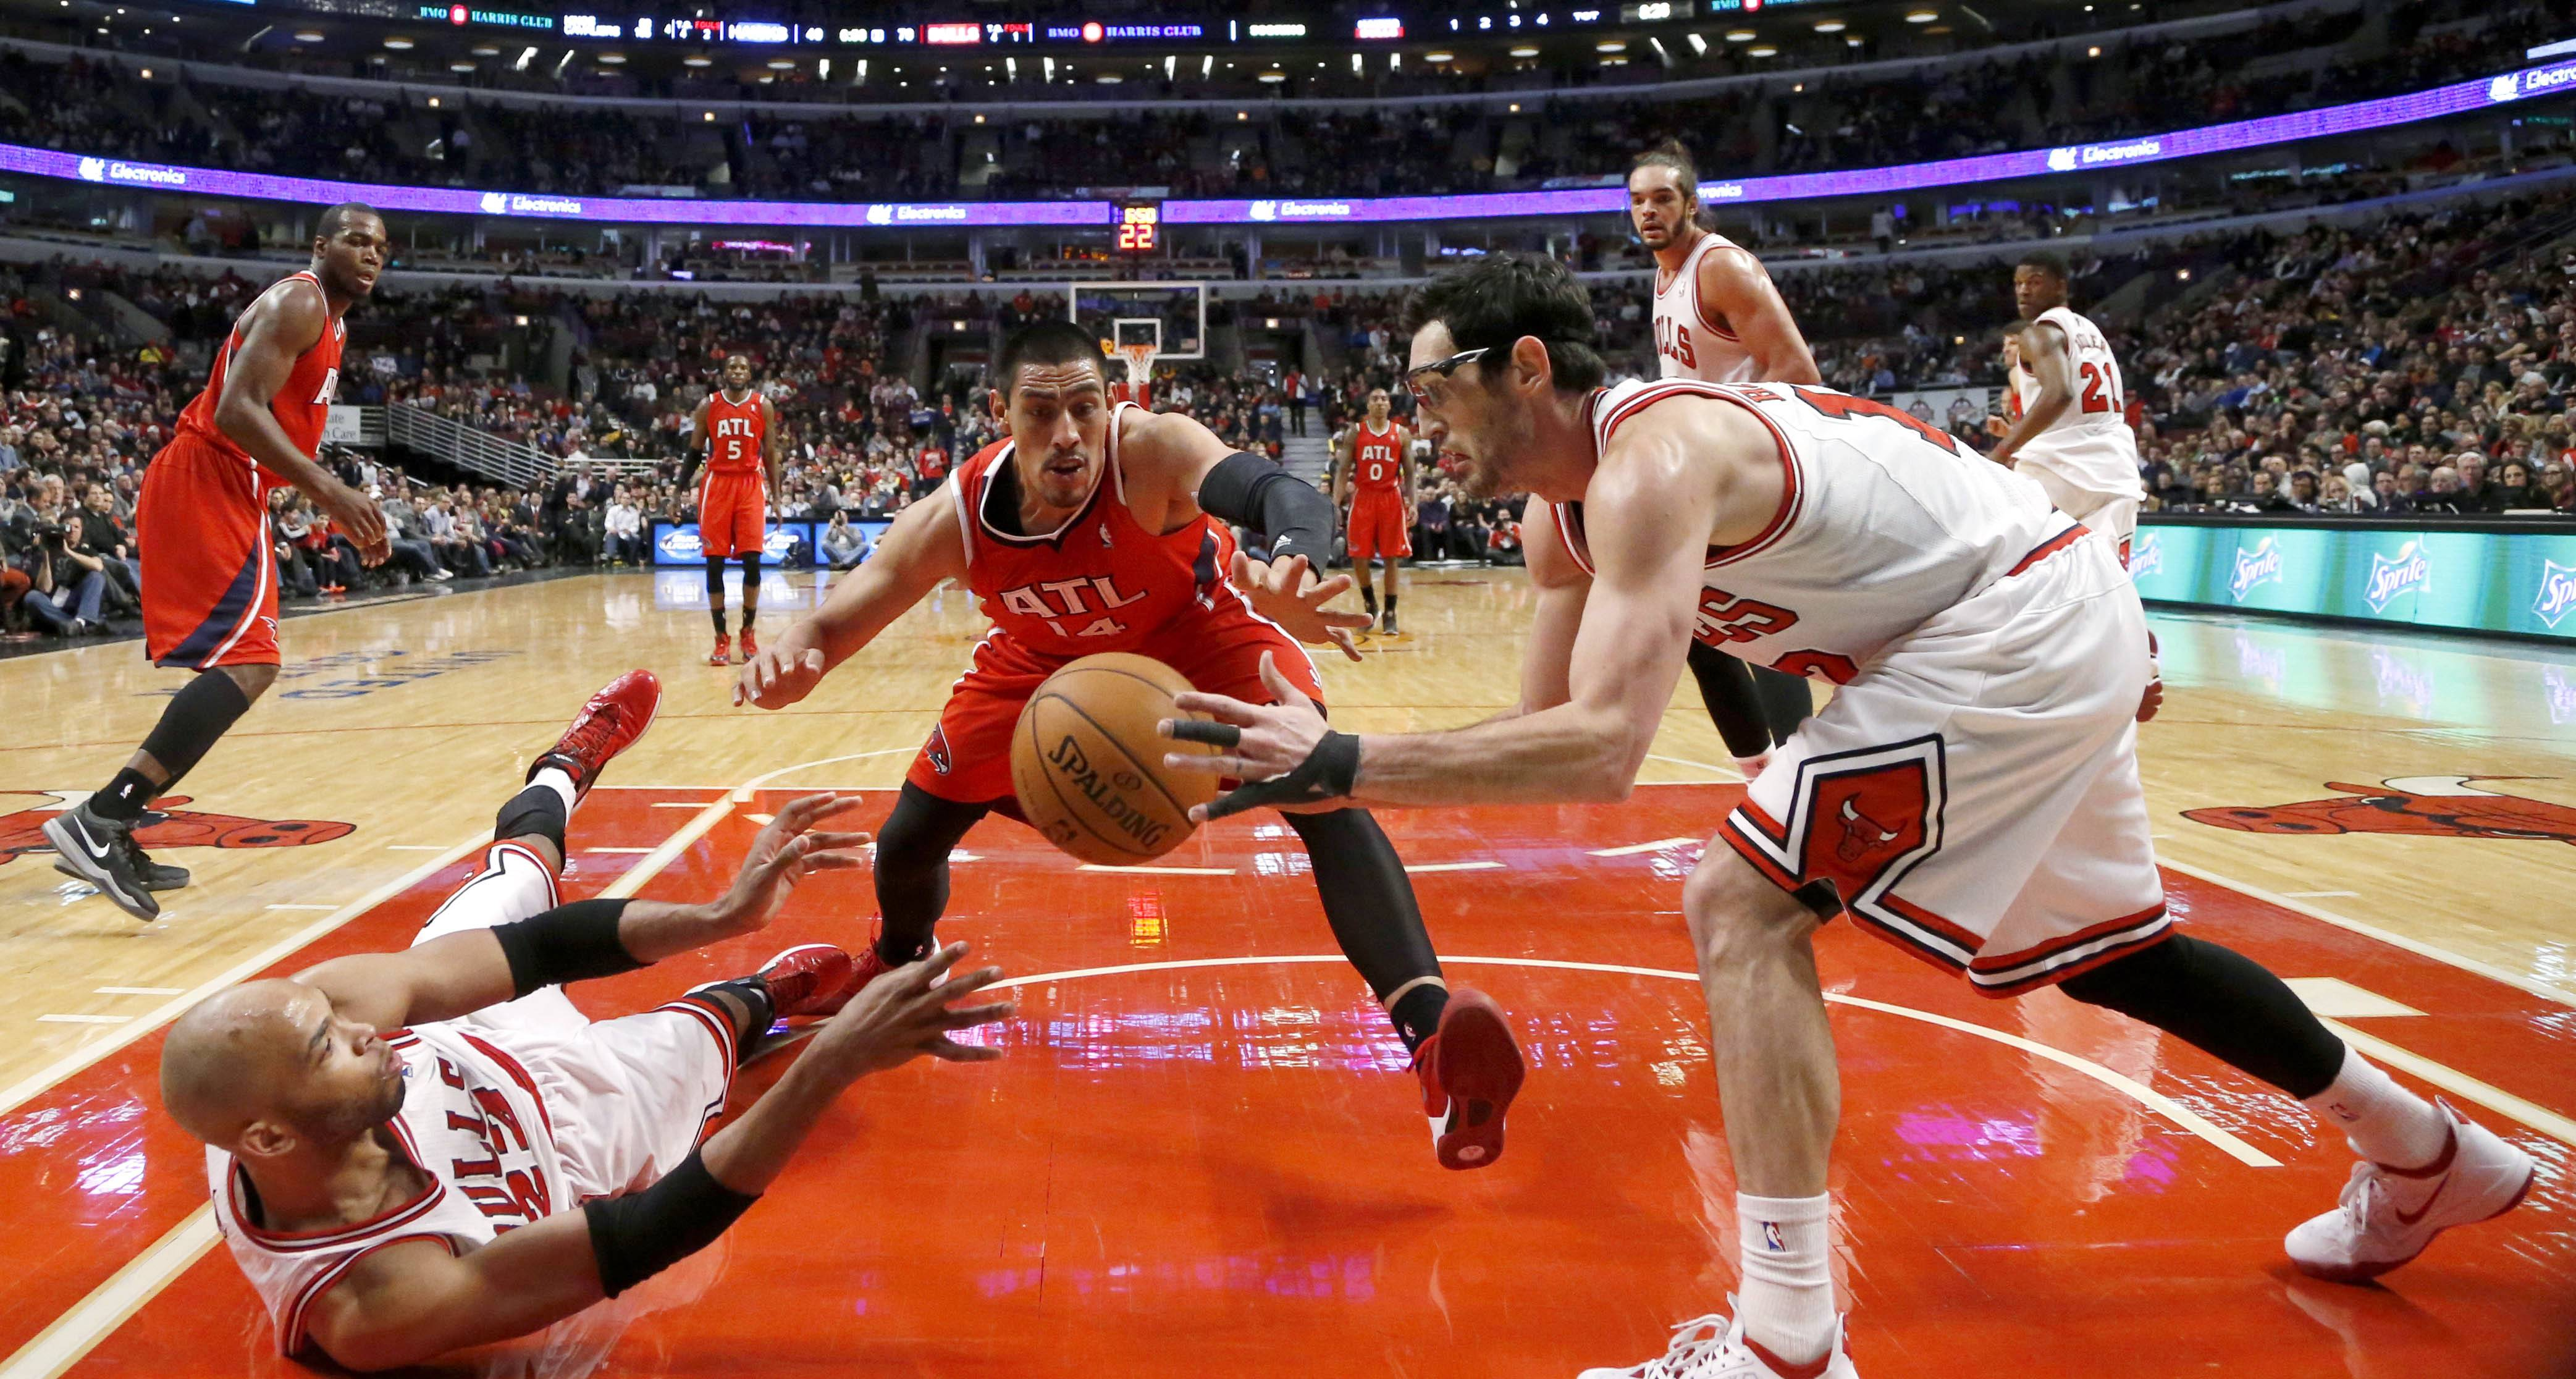 The Bulls' Taj Gibson, left, passes the ball to Kirk Hinrich as the Hawks Gustavo Ayon goes for the steal Tuesday night at the United Center.